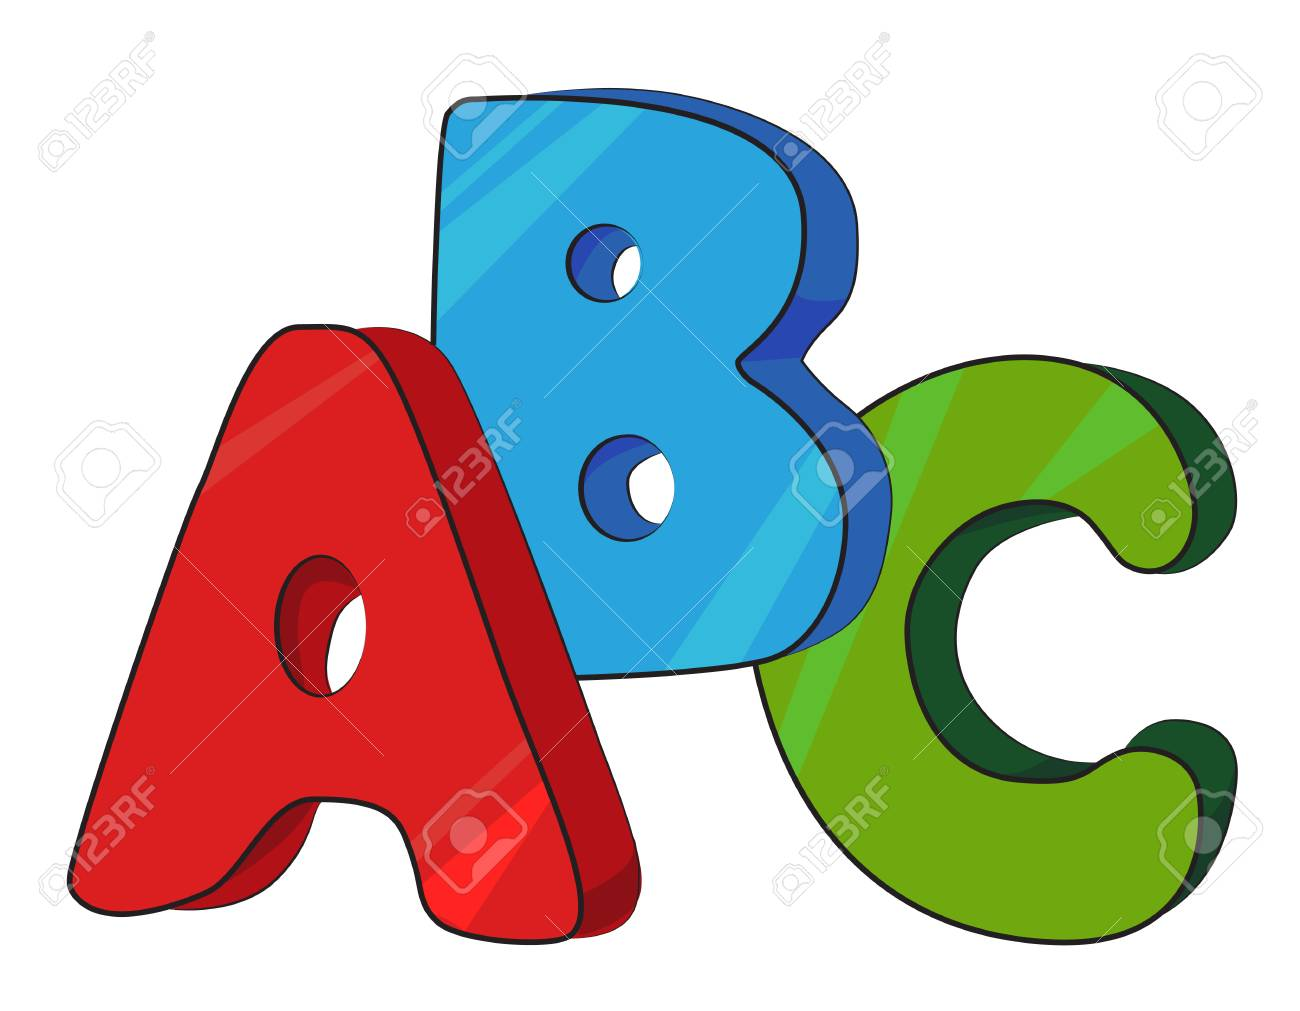 Cartoon image of ABC letters.